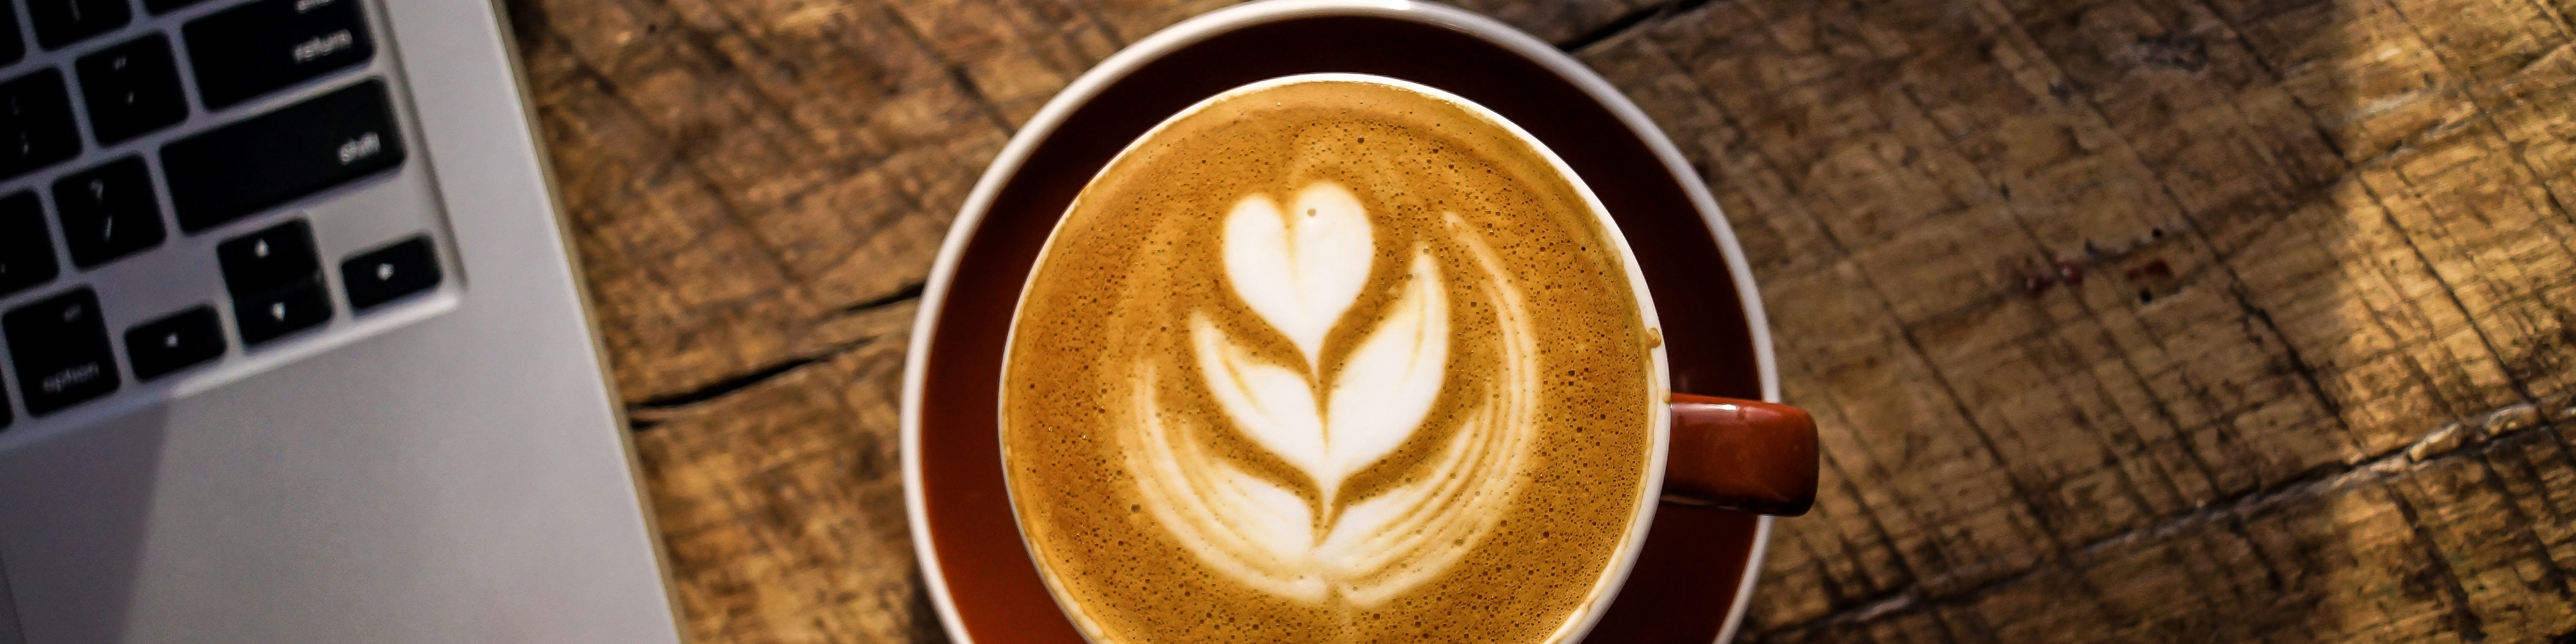 Birdseye view of a latte with heart art drawn on top